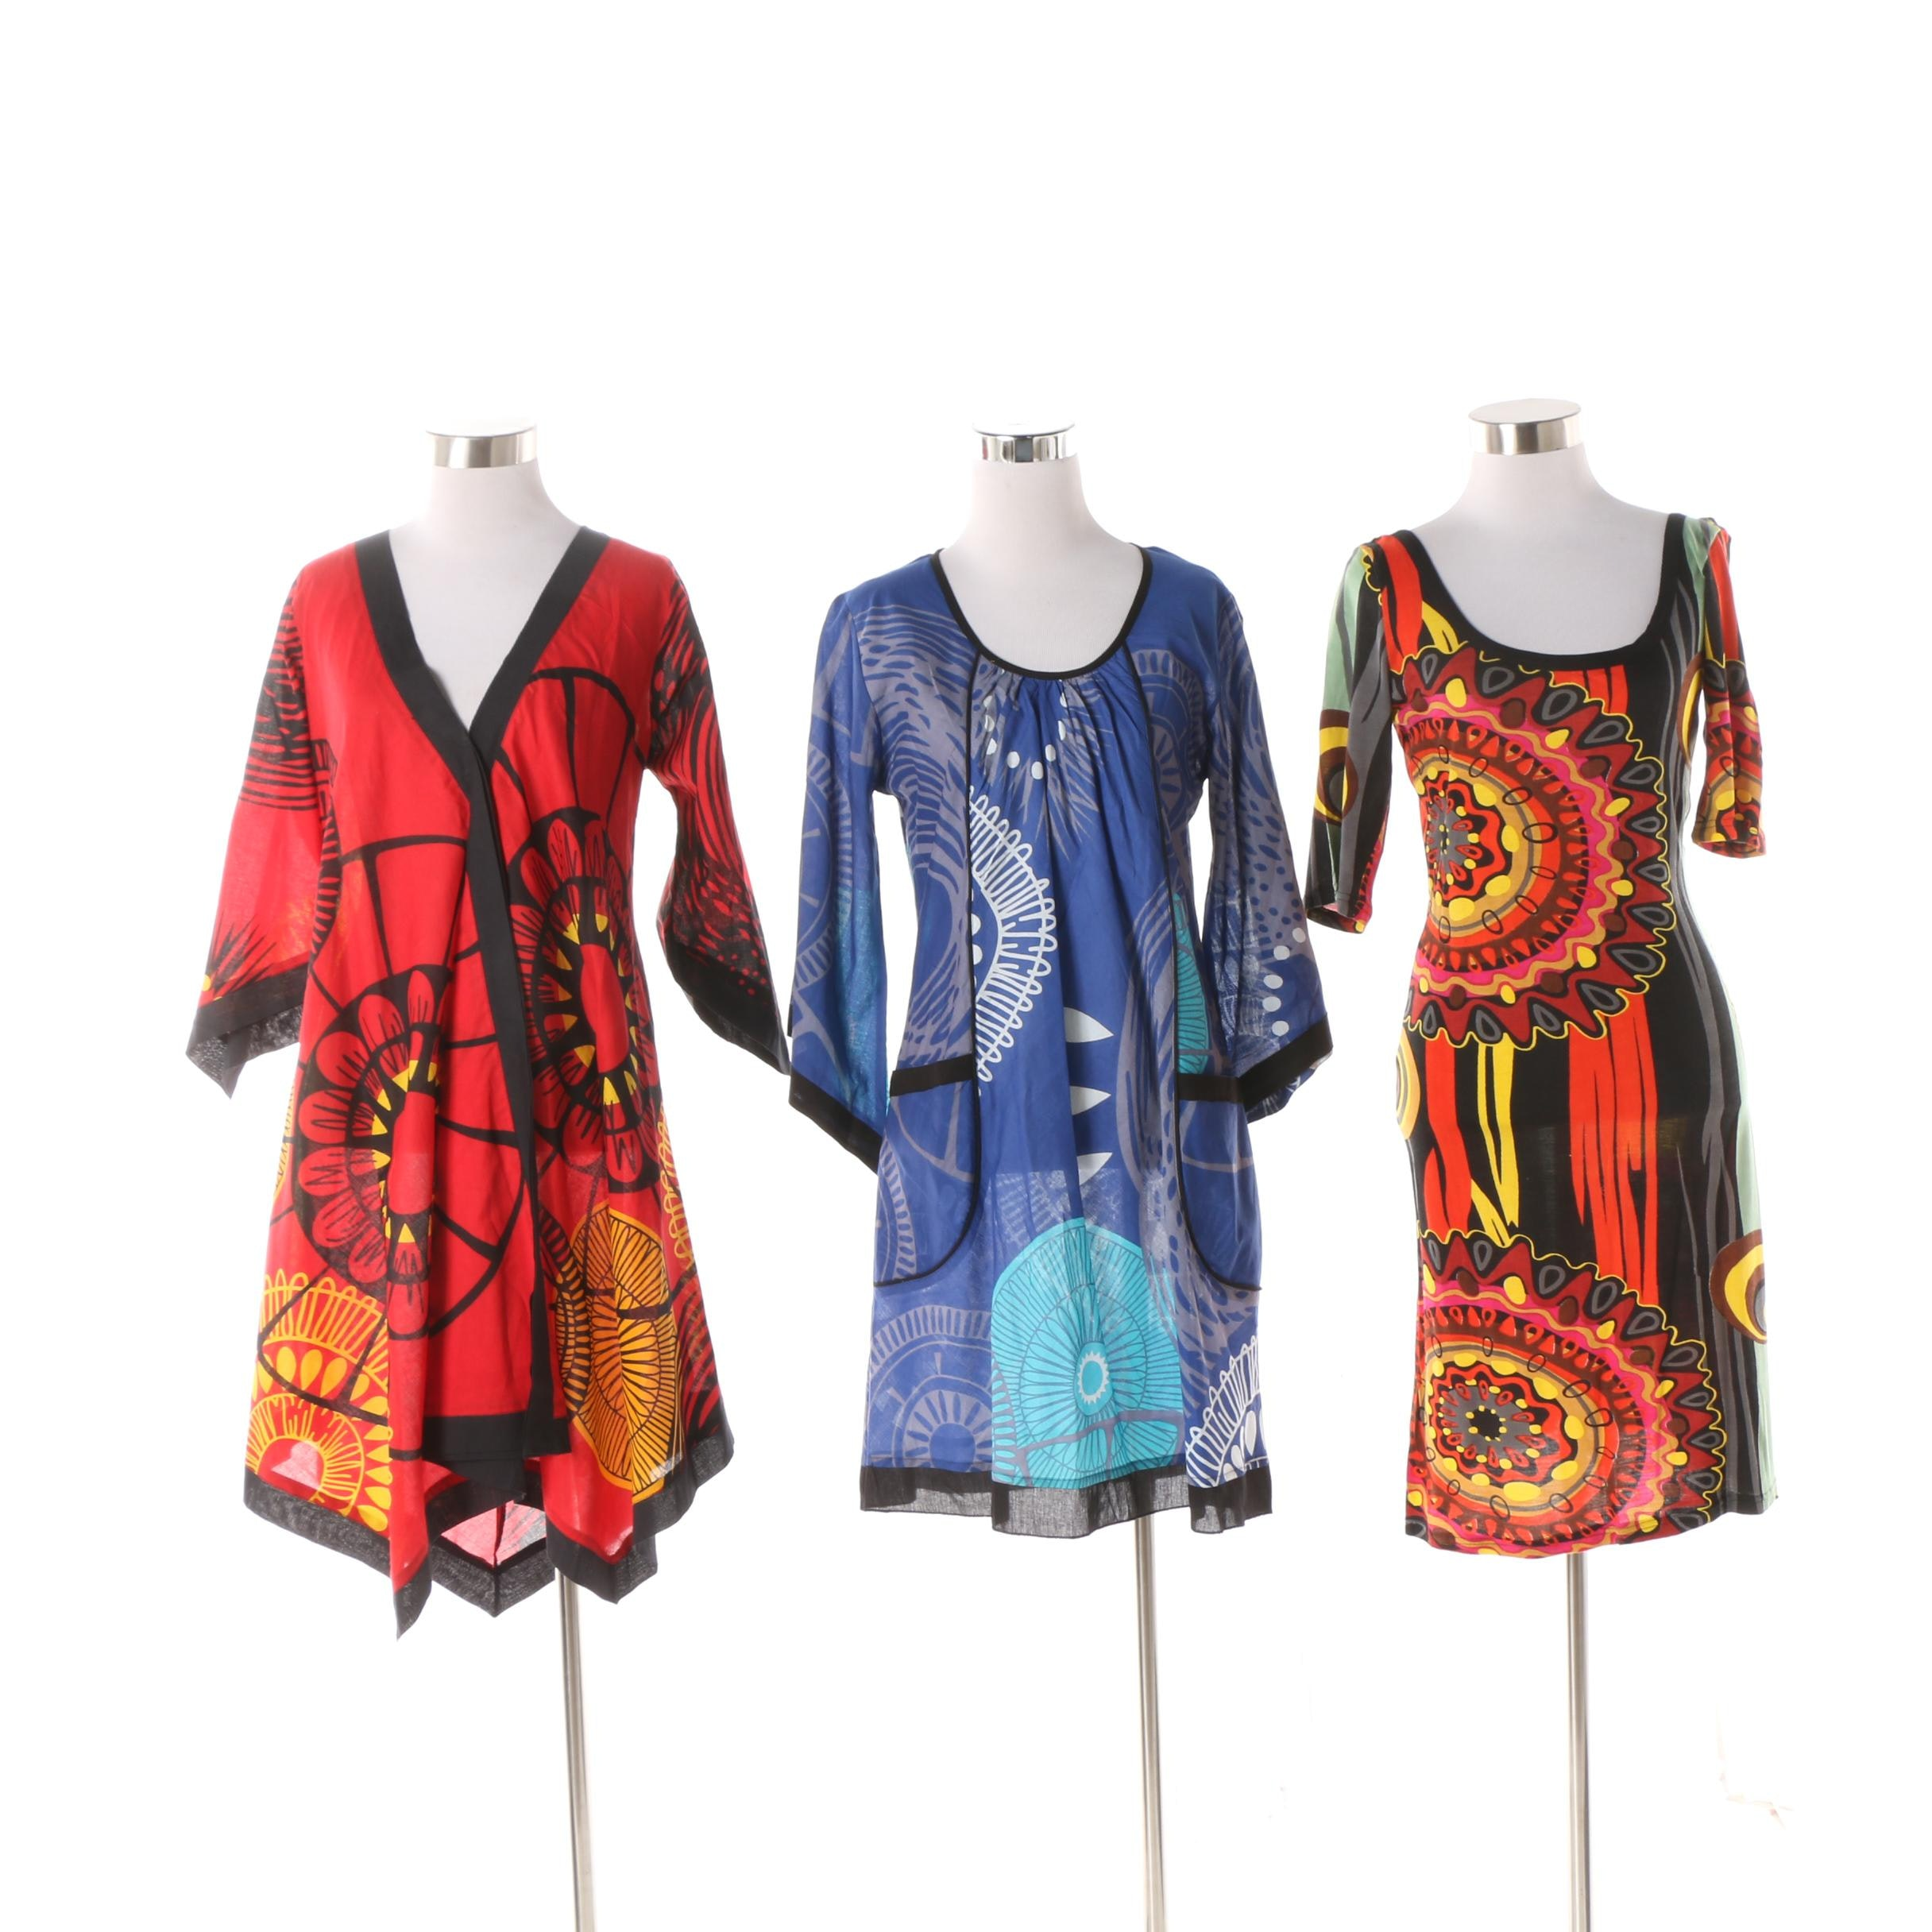 Aller Simplement Mandala Print Tunics and Abstract Print Bodycon Dress